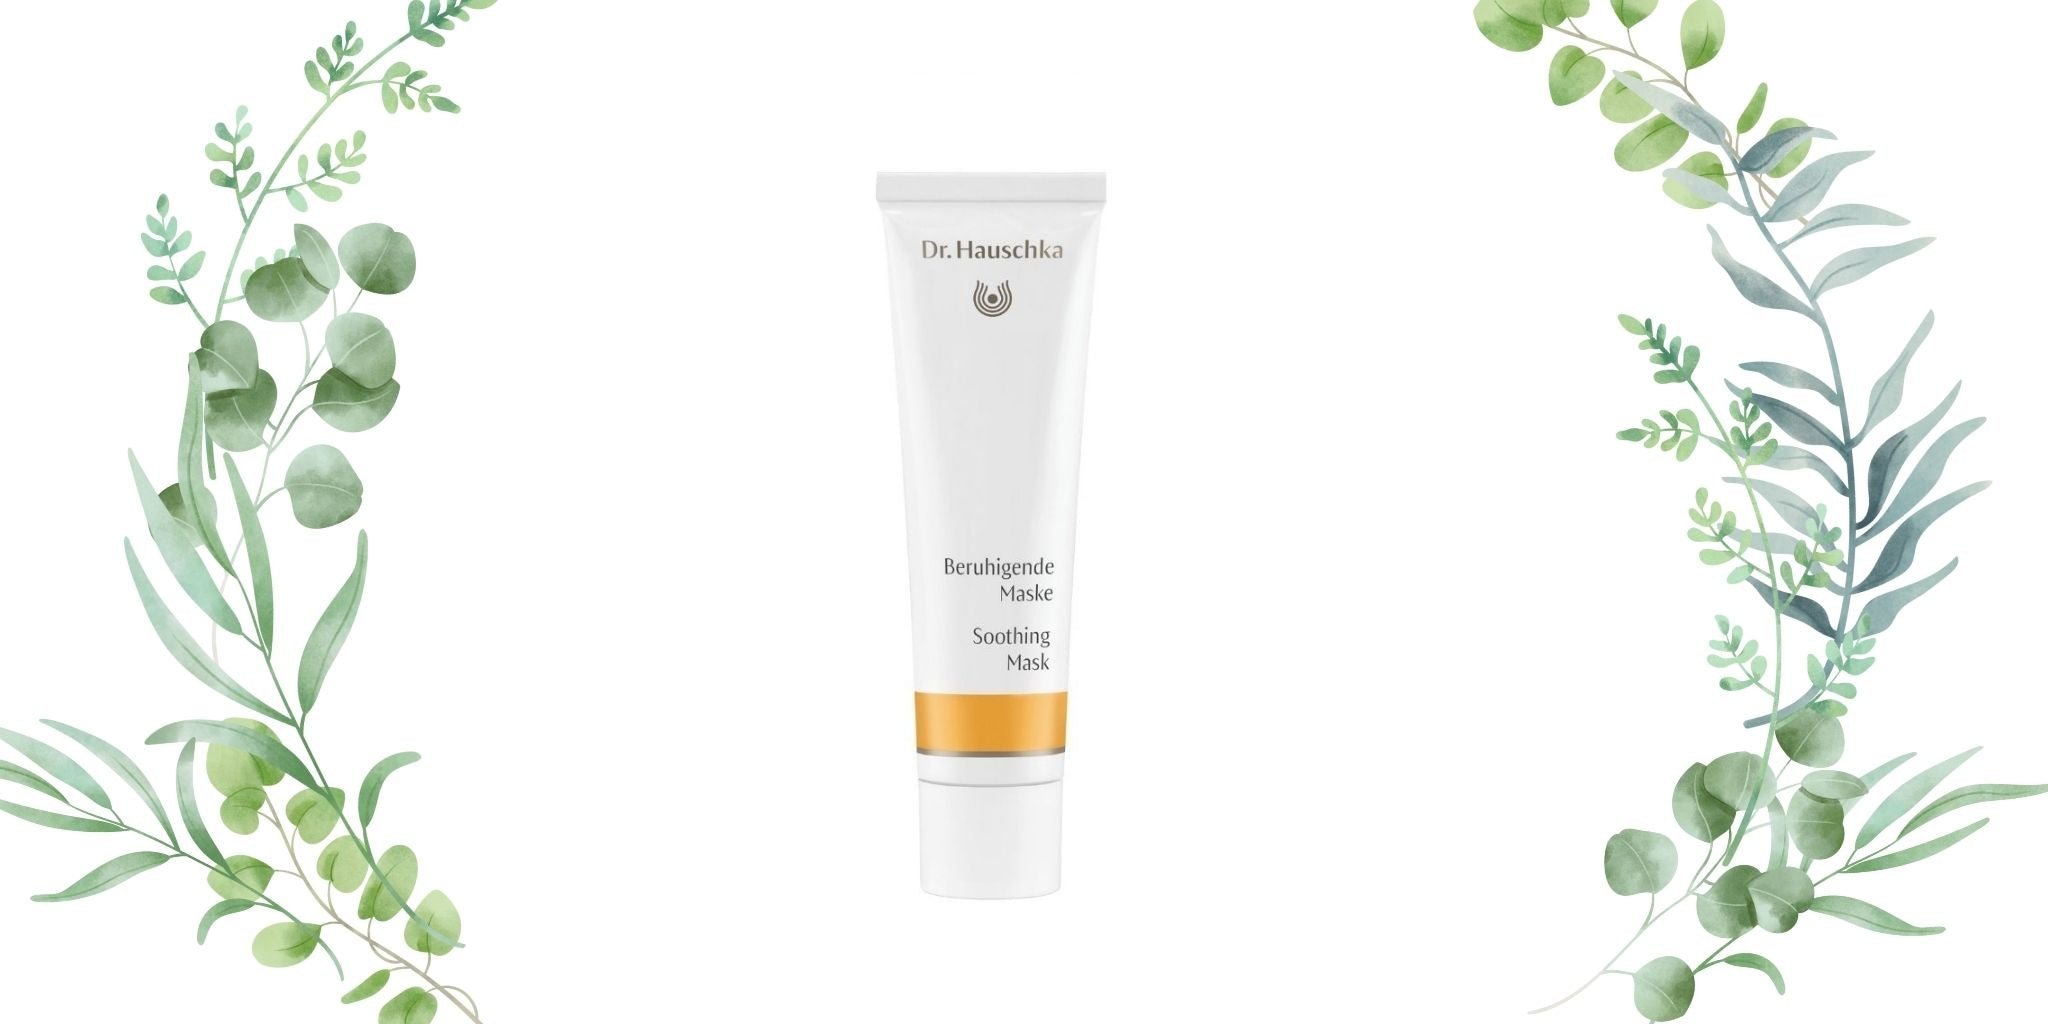 Dr. Hauschka Soothing Mask